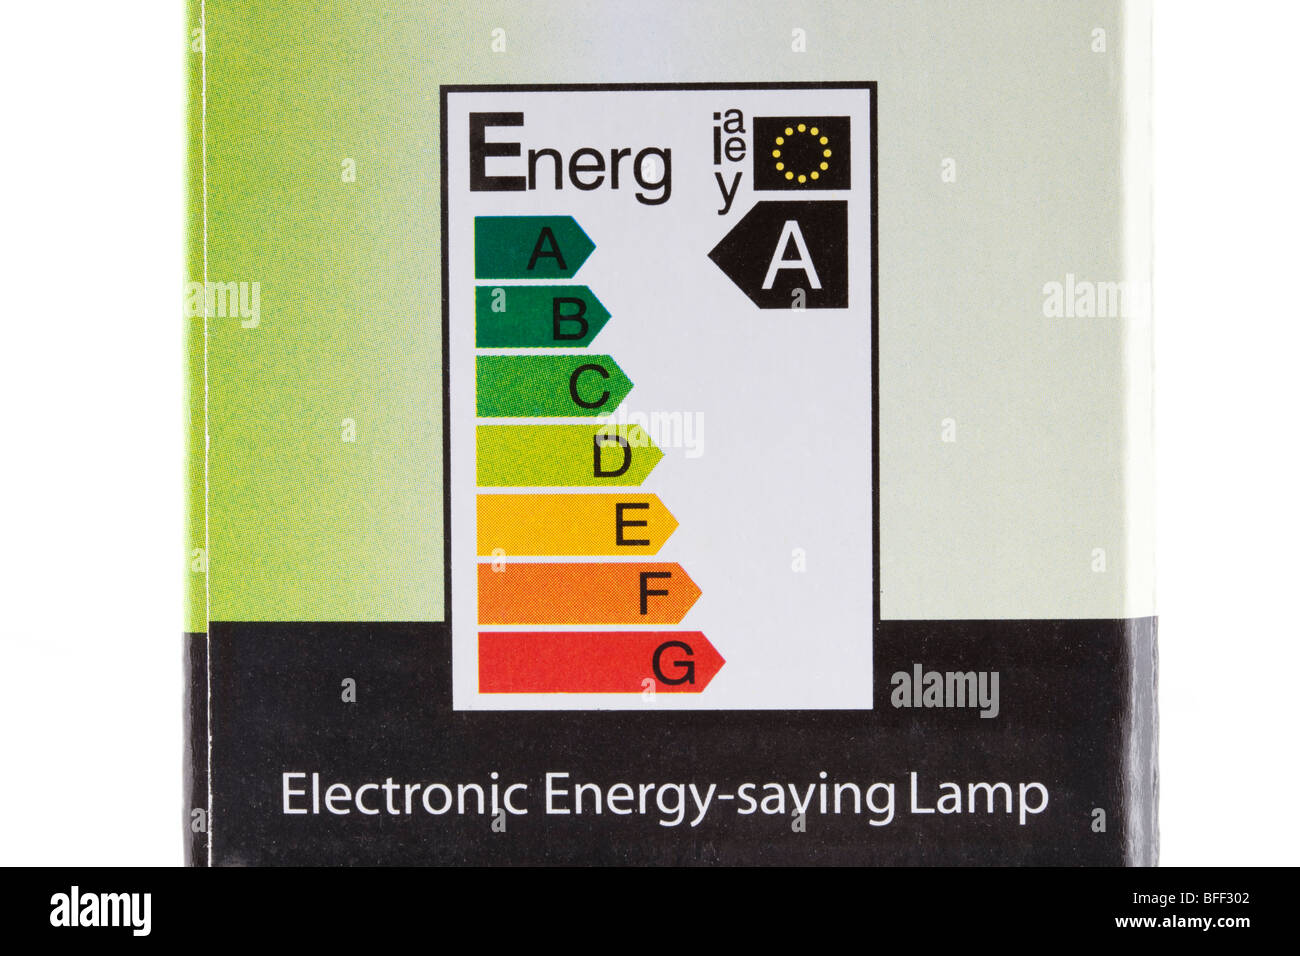 EU electrical energy label on low energy light bulb box showing highest energy efficiency rating A. England UK Britain - Stock Image